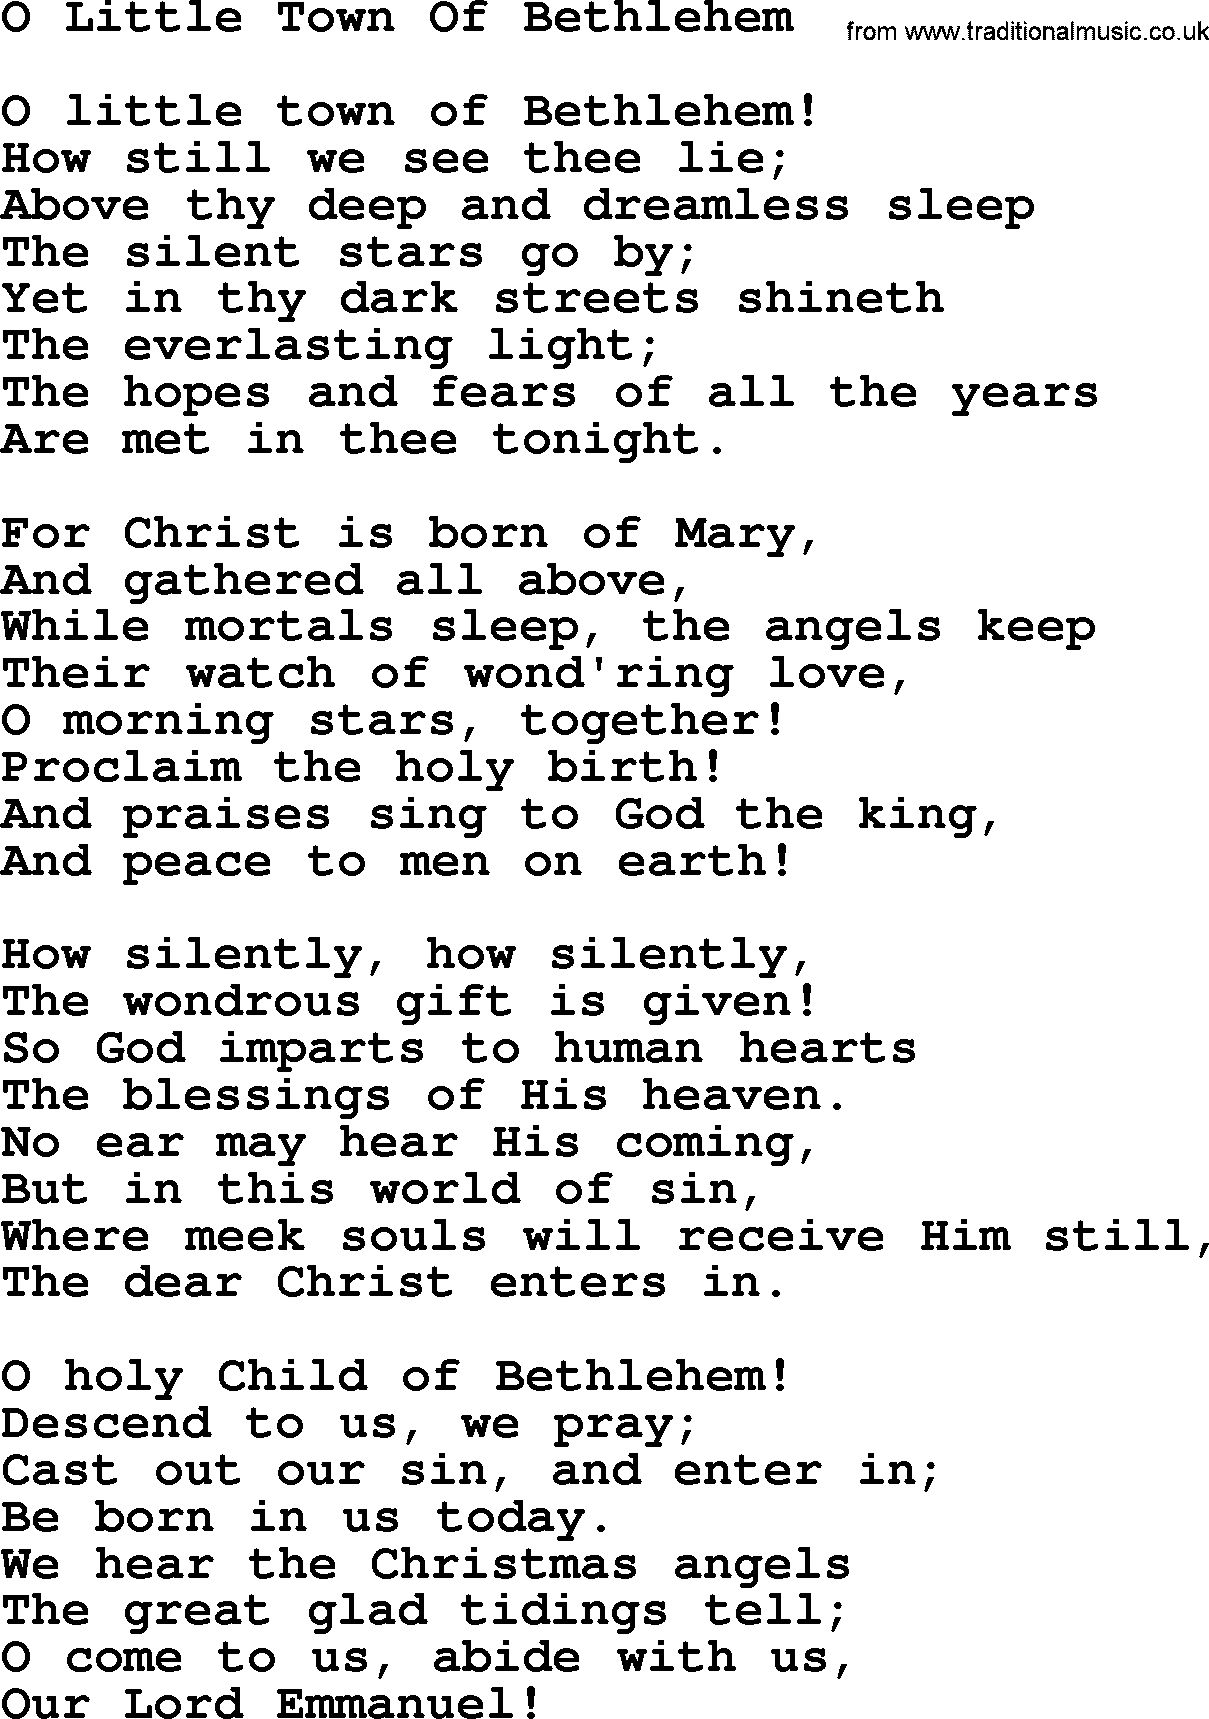 titles of christmas songs